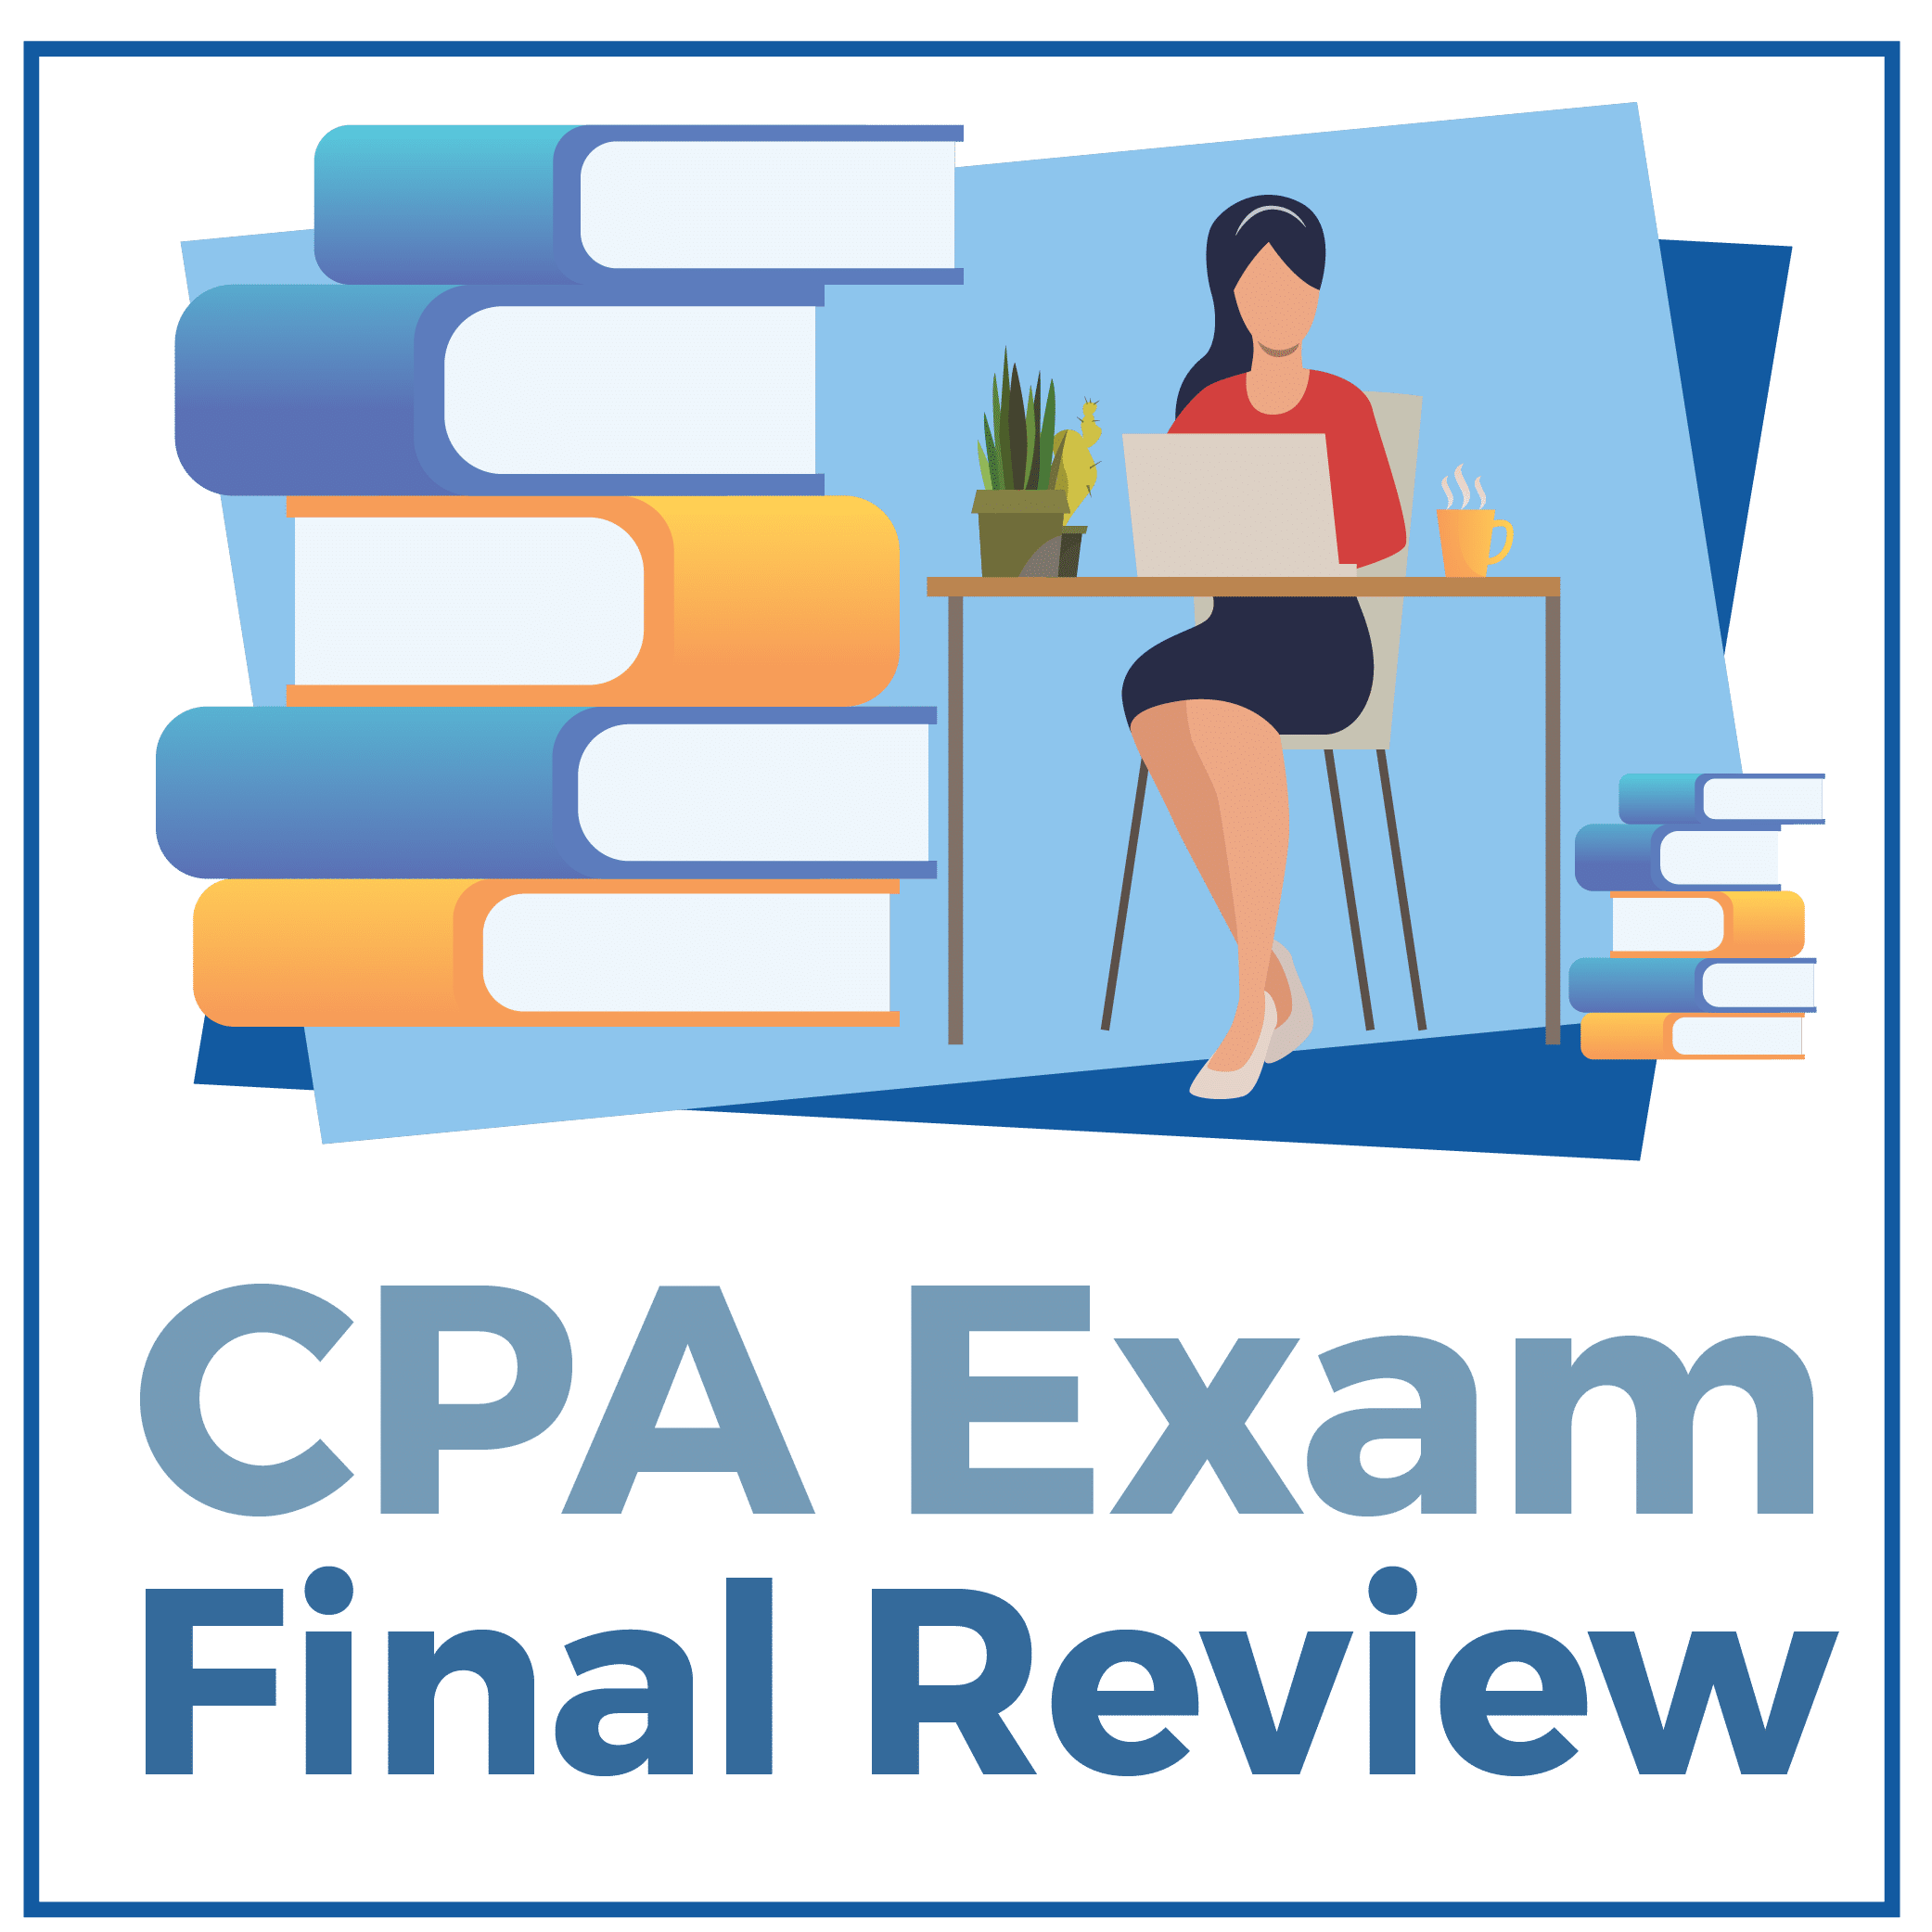 CPA Exam Final Review